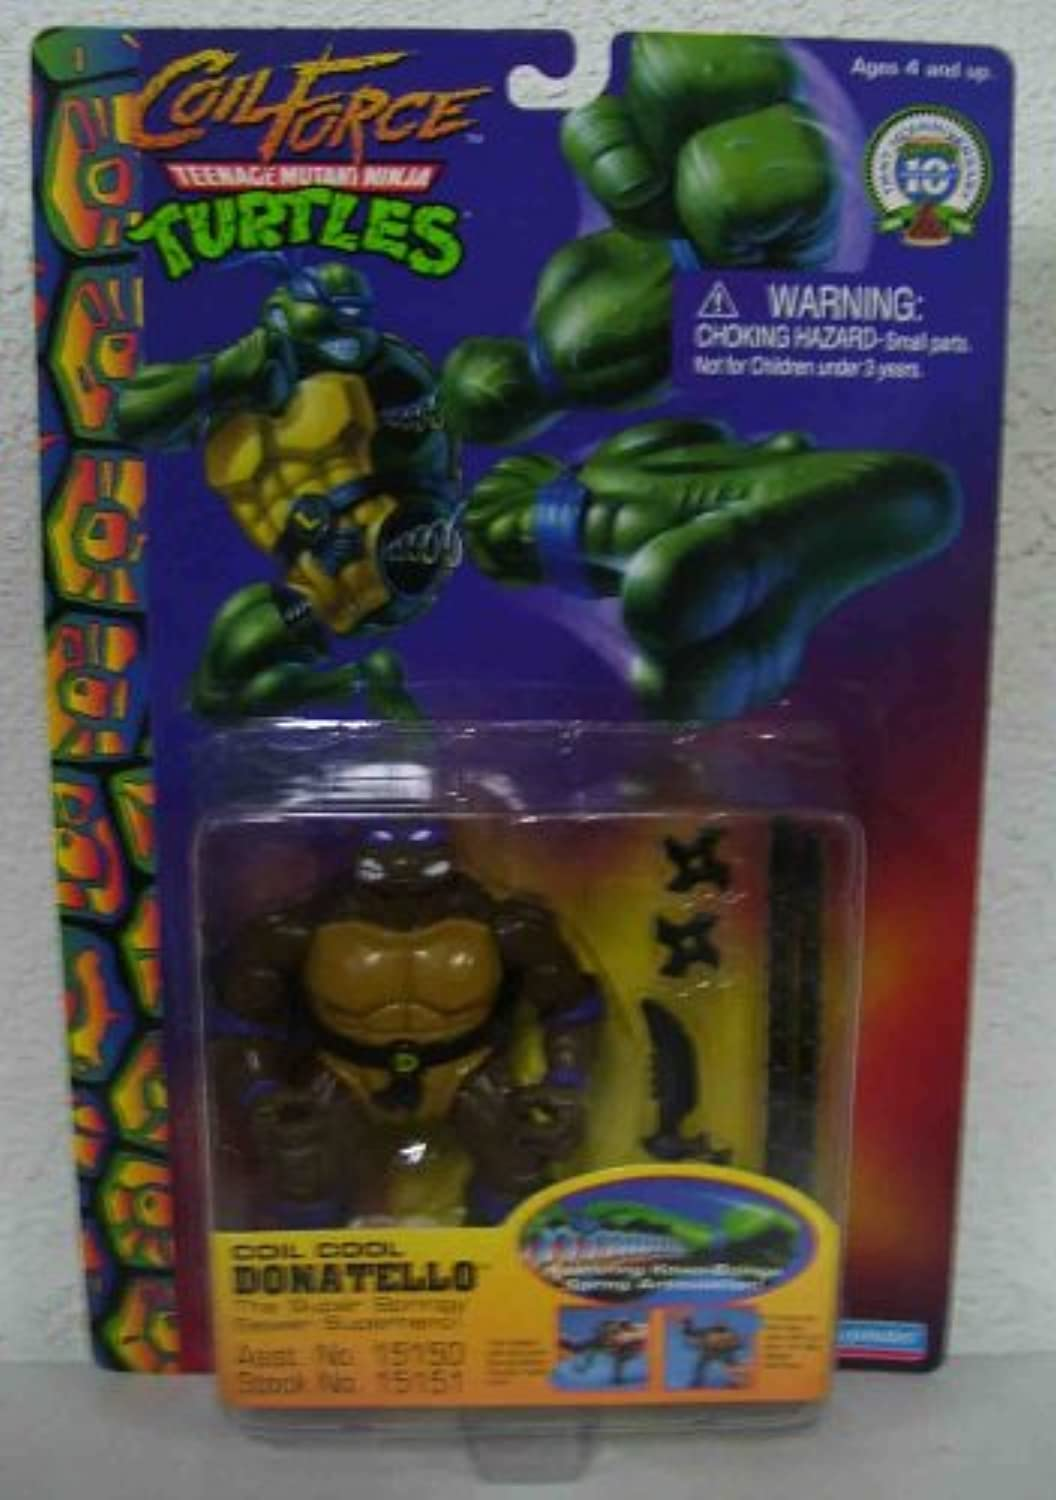 TMNT 10th anniversary Teenage Mutant Ninja Turtles COIL FORCE Coil Cool Donatello by Playmates